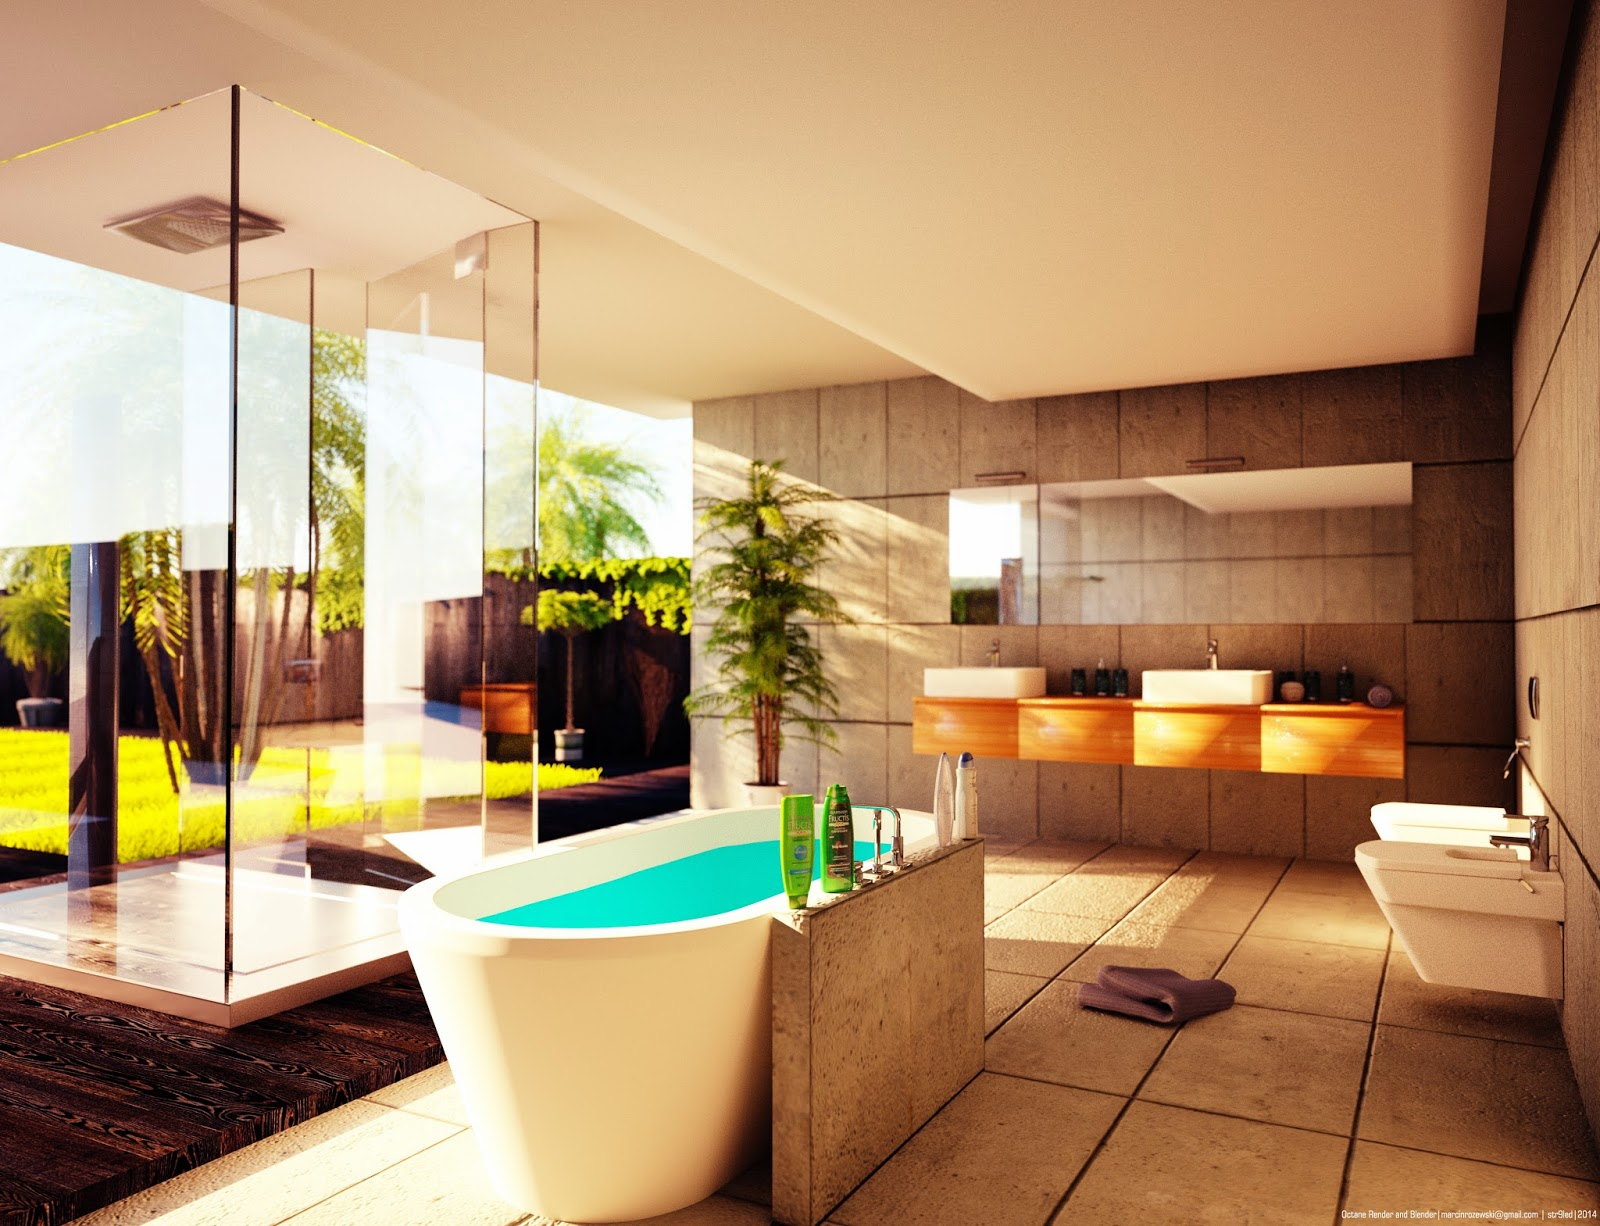 Bathroom Architectural Rendering Blendernation